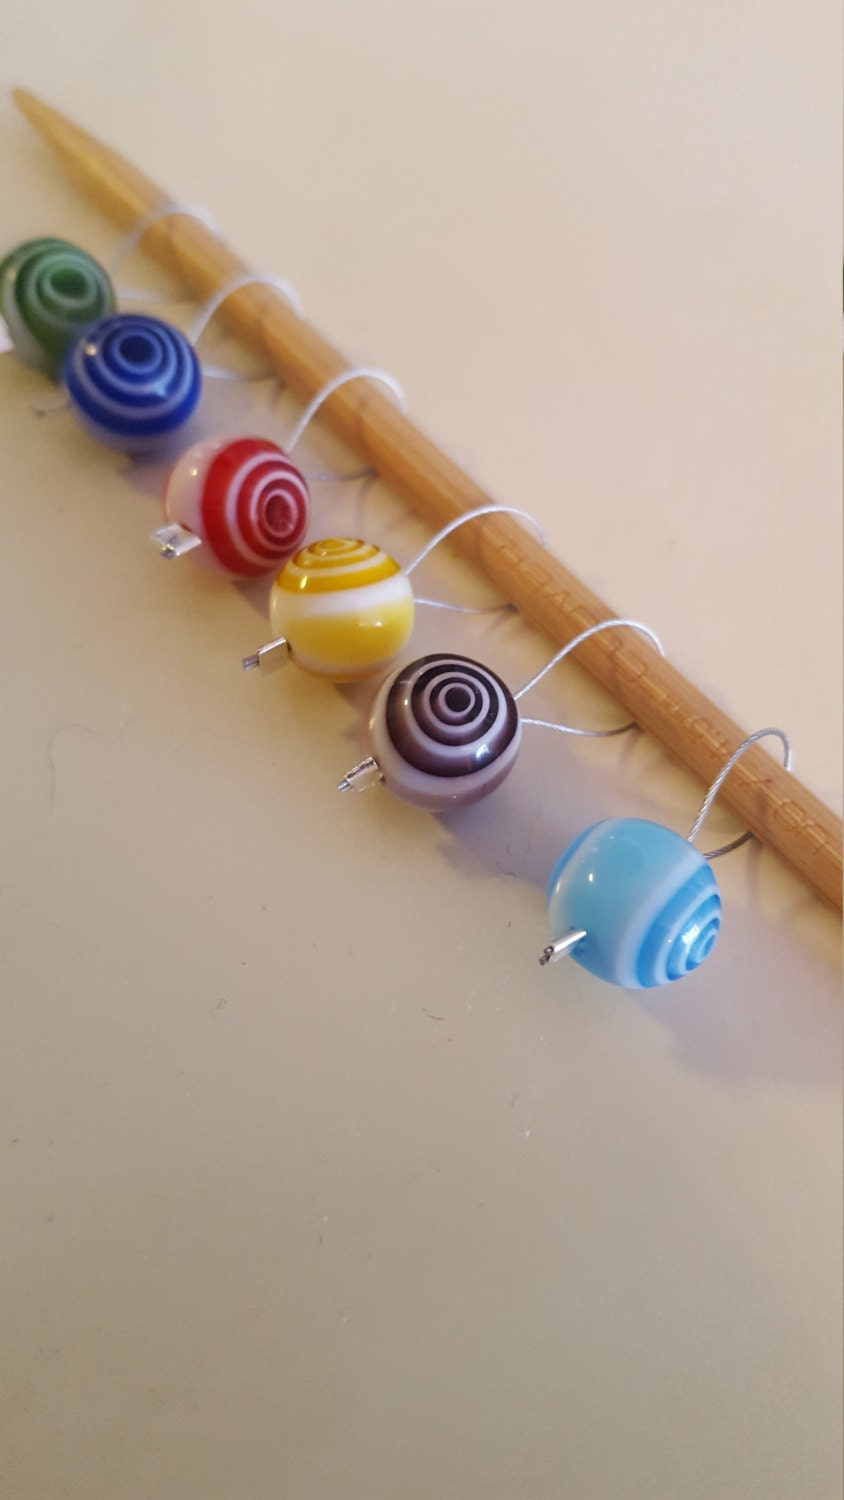 Knitting Markers Etsy : Round ball knitting stitch markers from evidentlymotley on